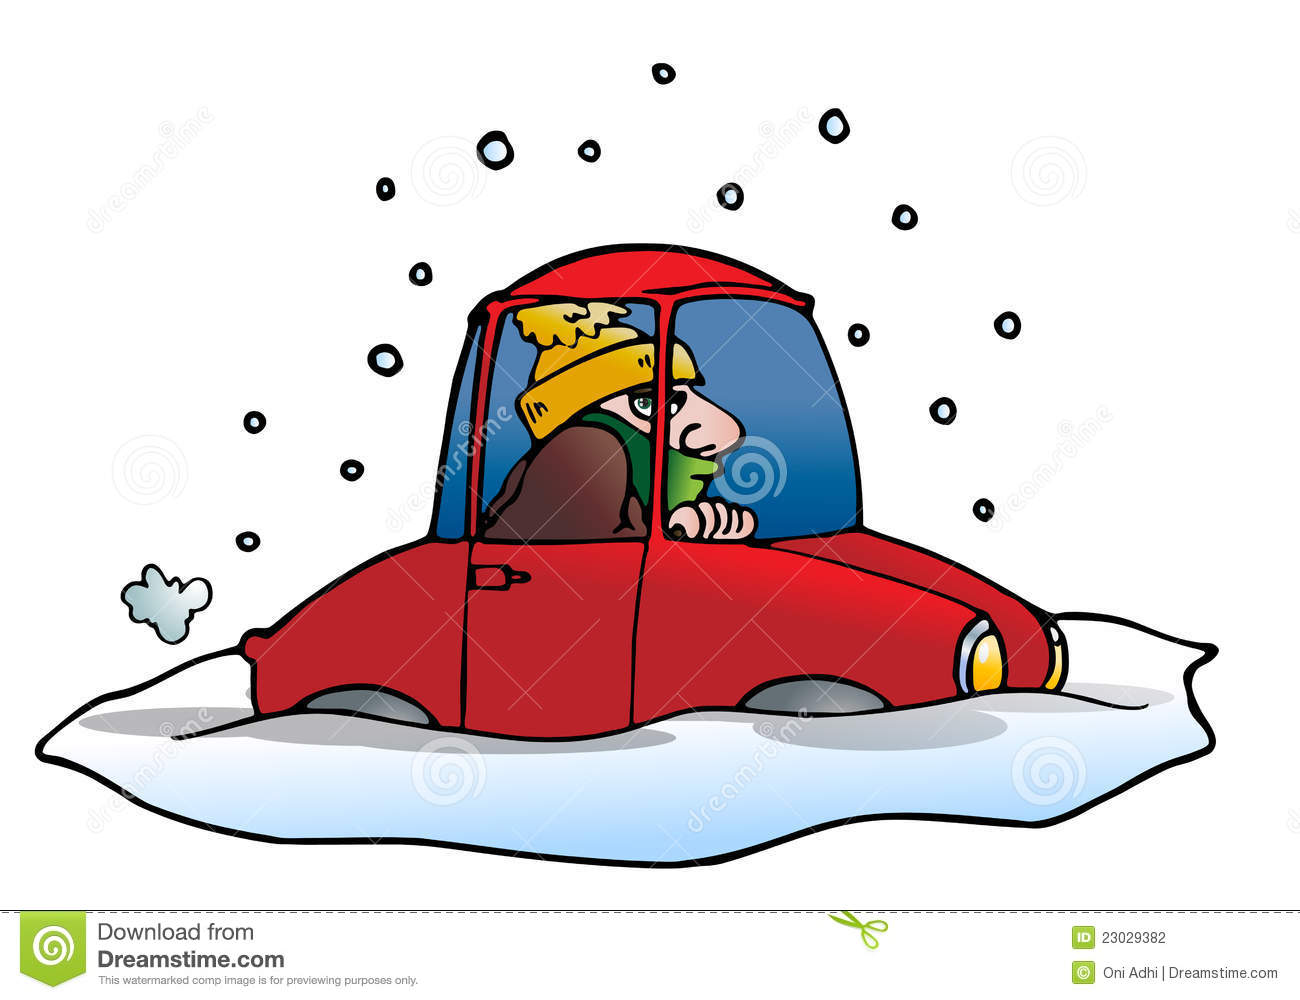 Car stuck in snow clipart.